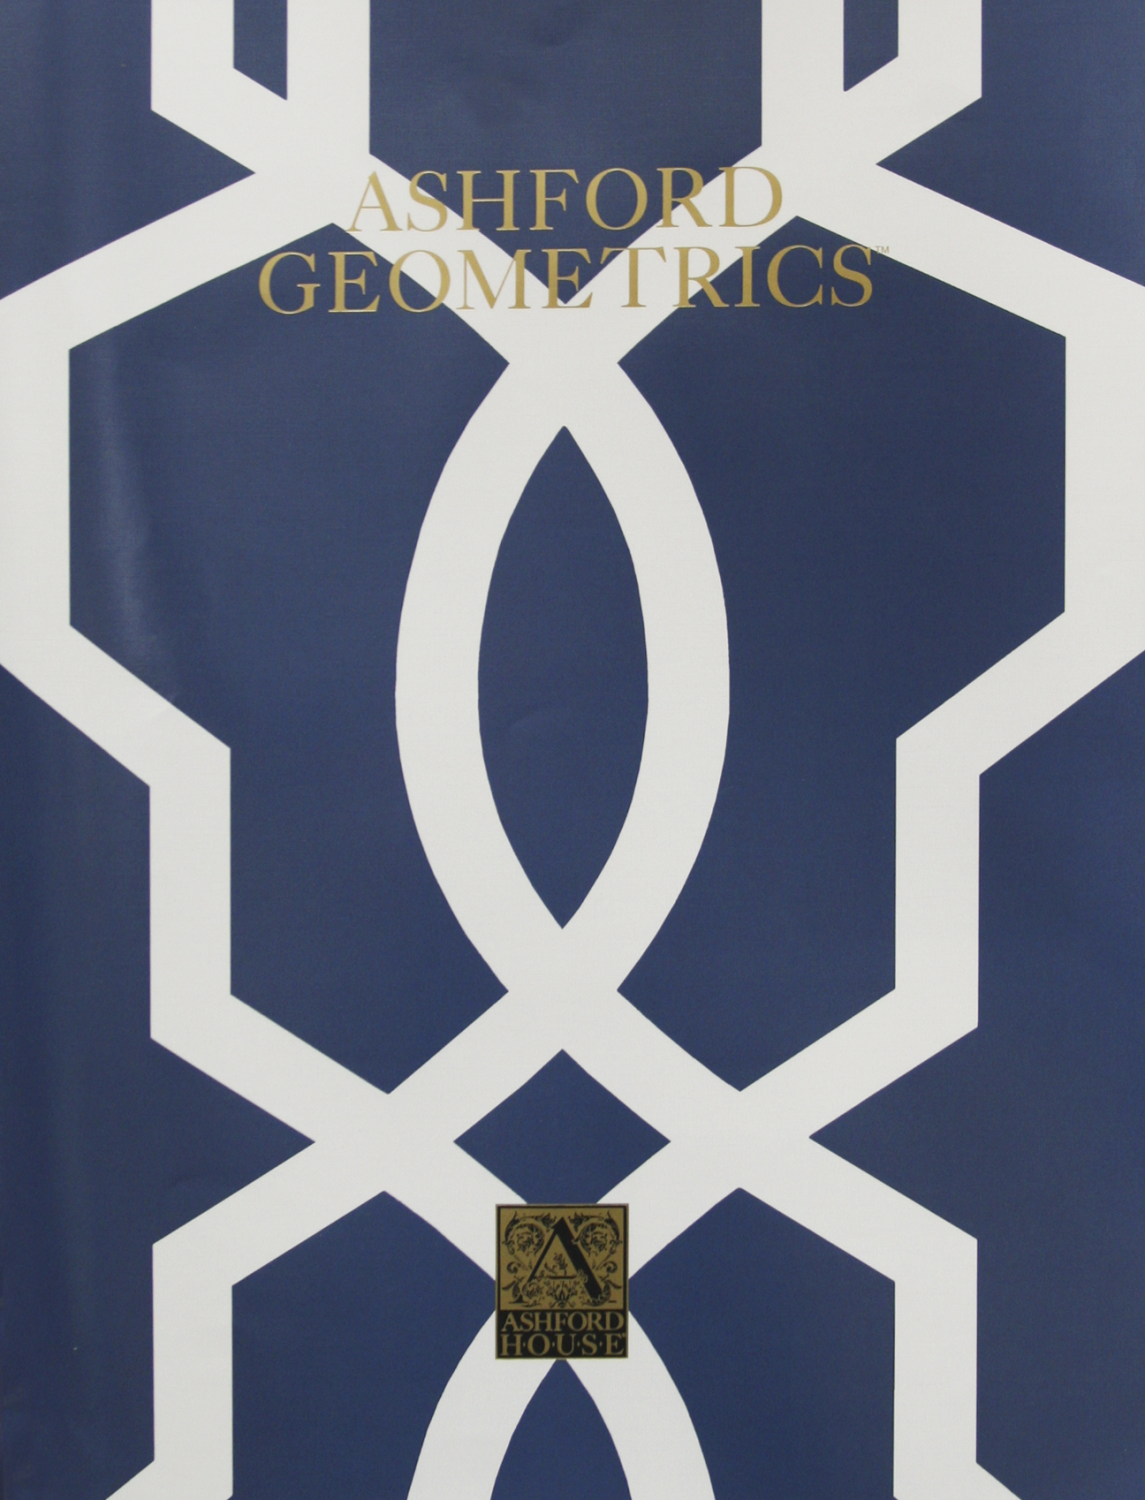 Geometrics Wallpaper by Ashford House